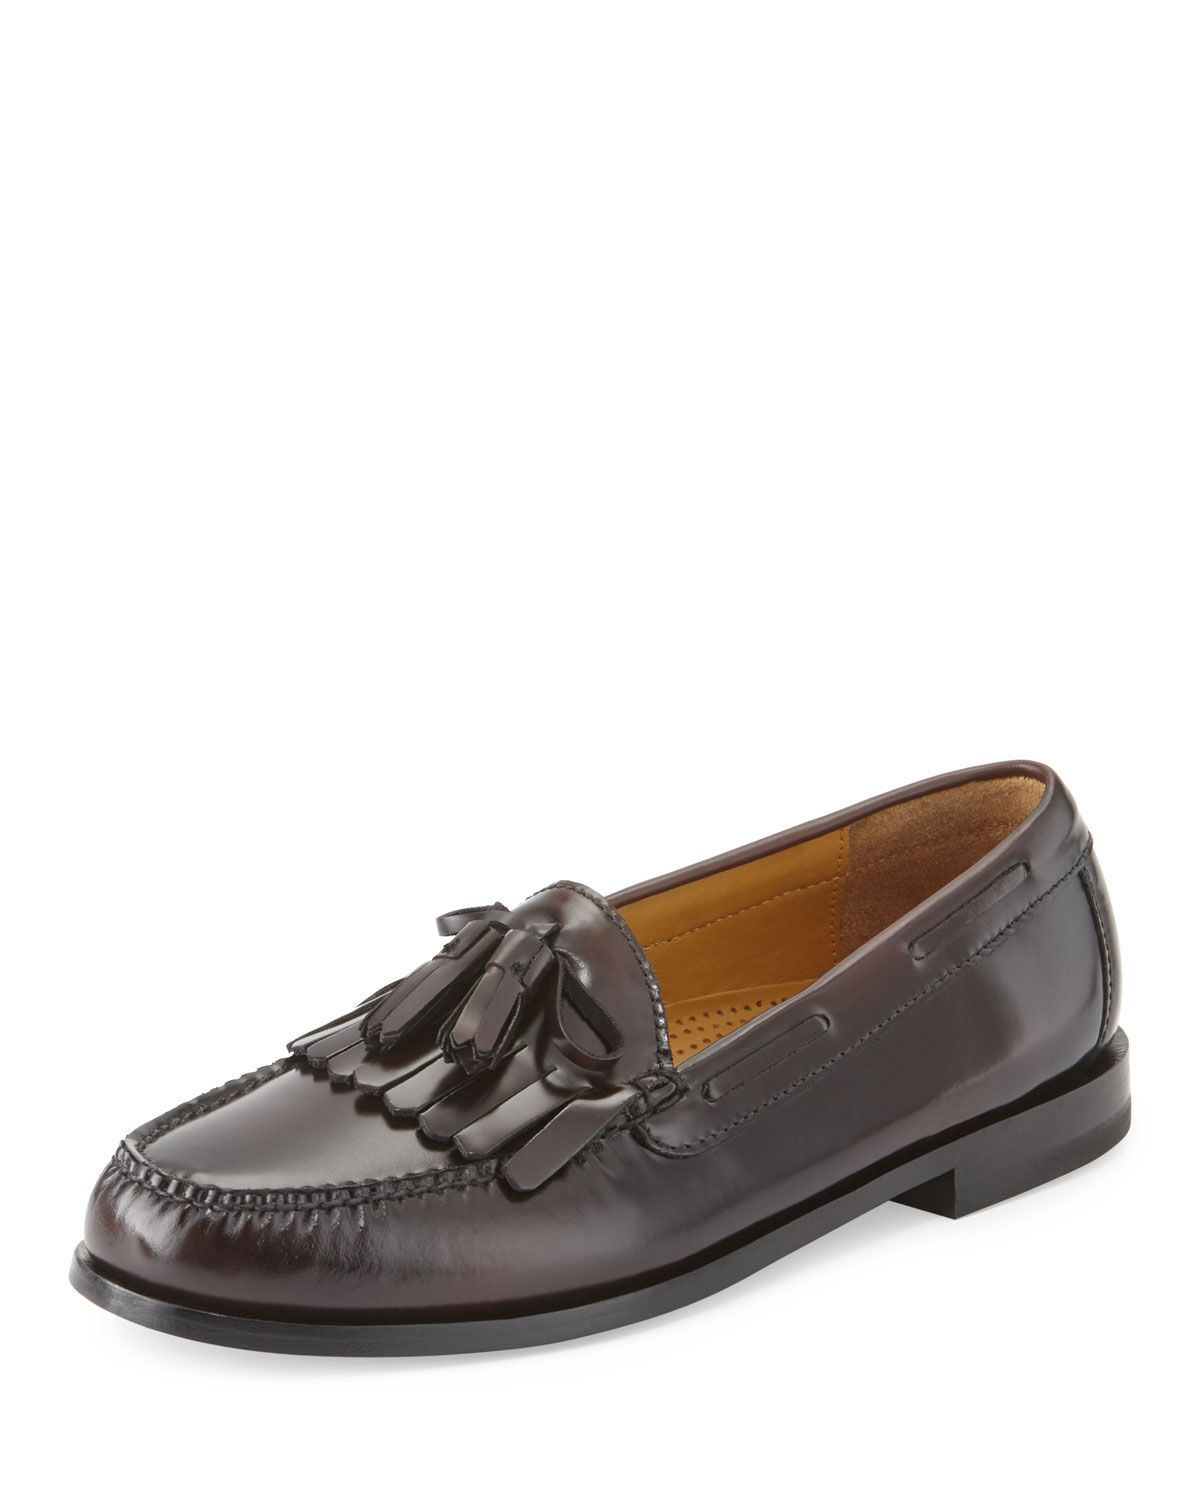 e4b82f75e09 Cole Haan Pinch Polished Leather Tassel Loafer